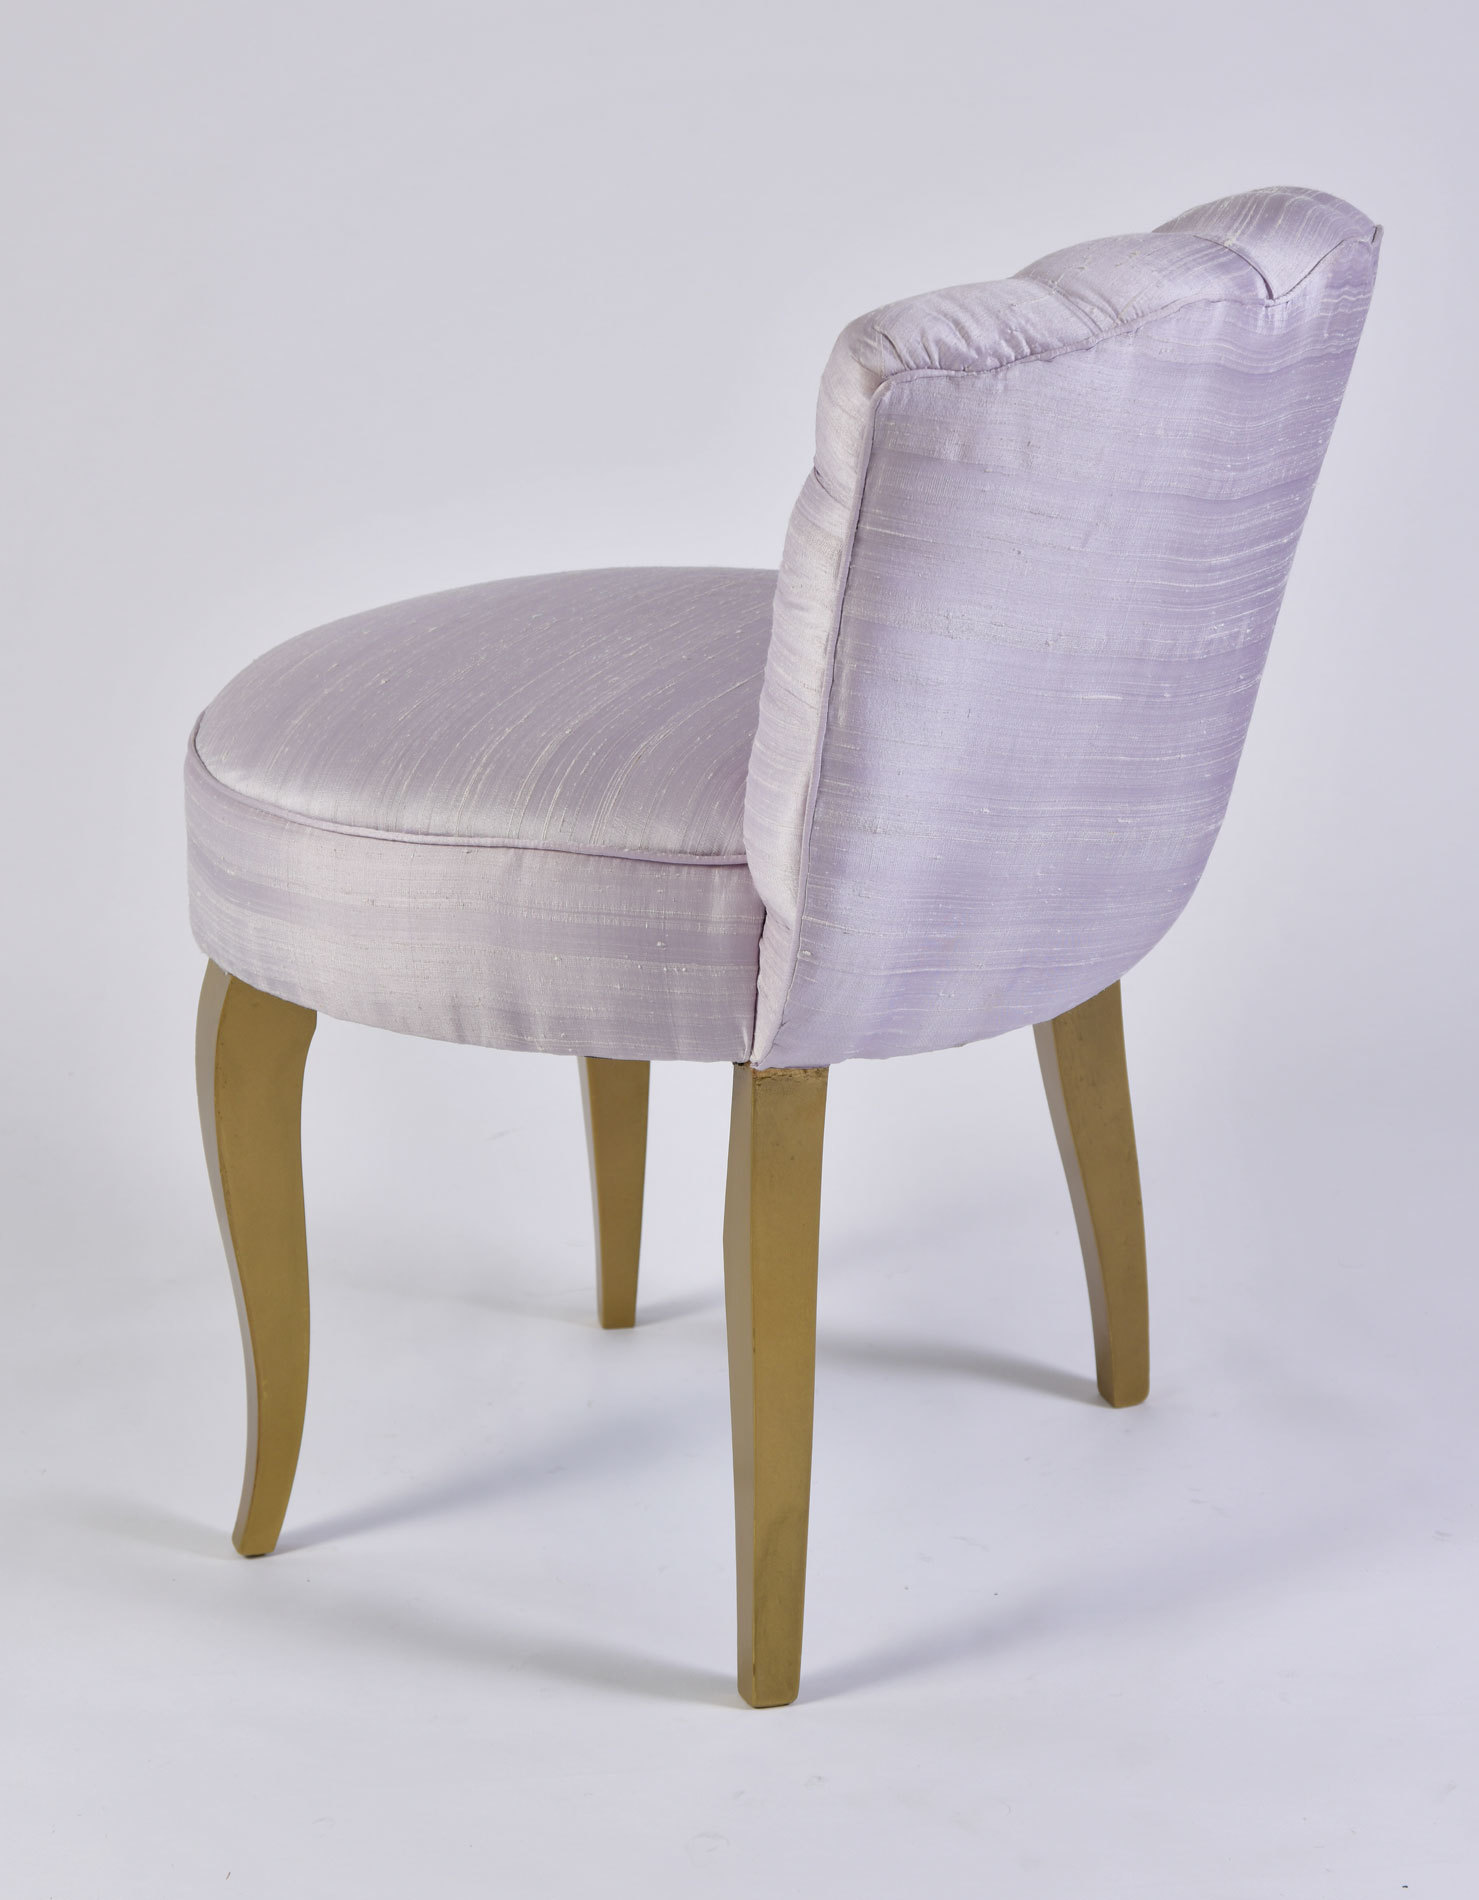 The image for Vintage Upholstered Seat 03